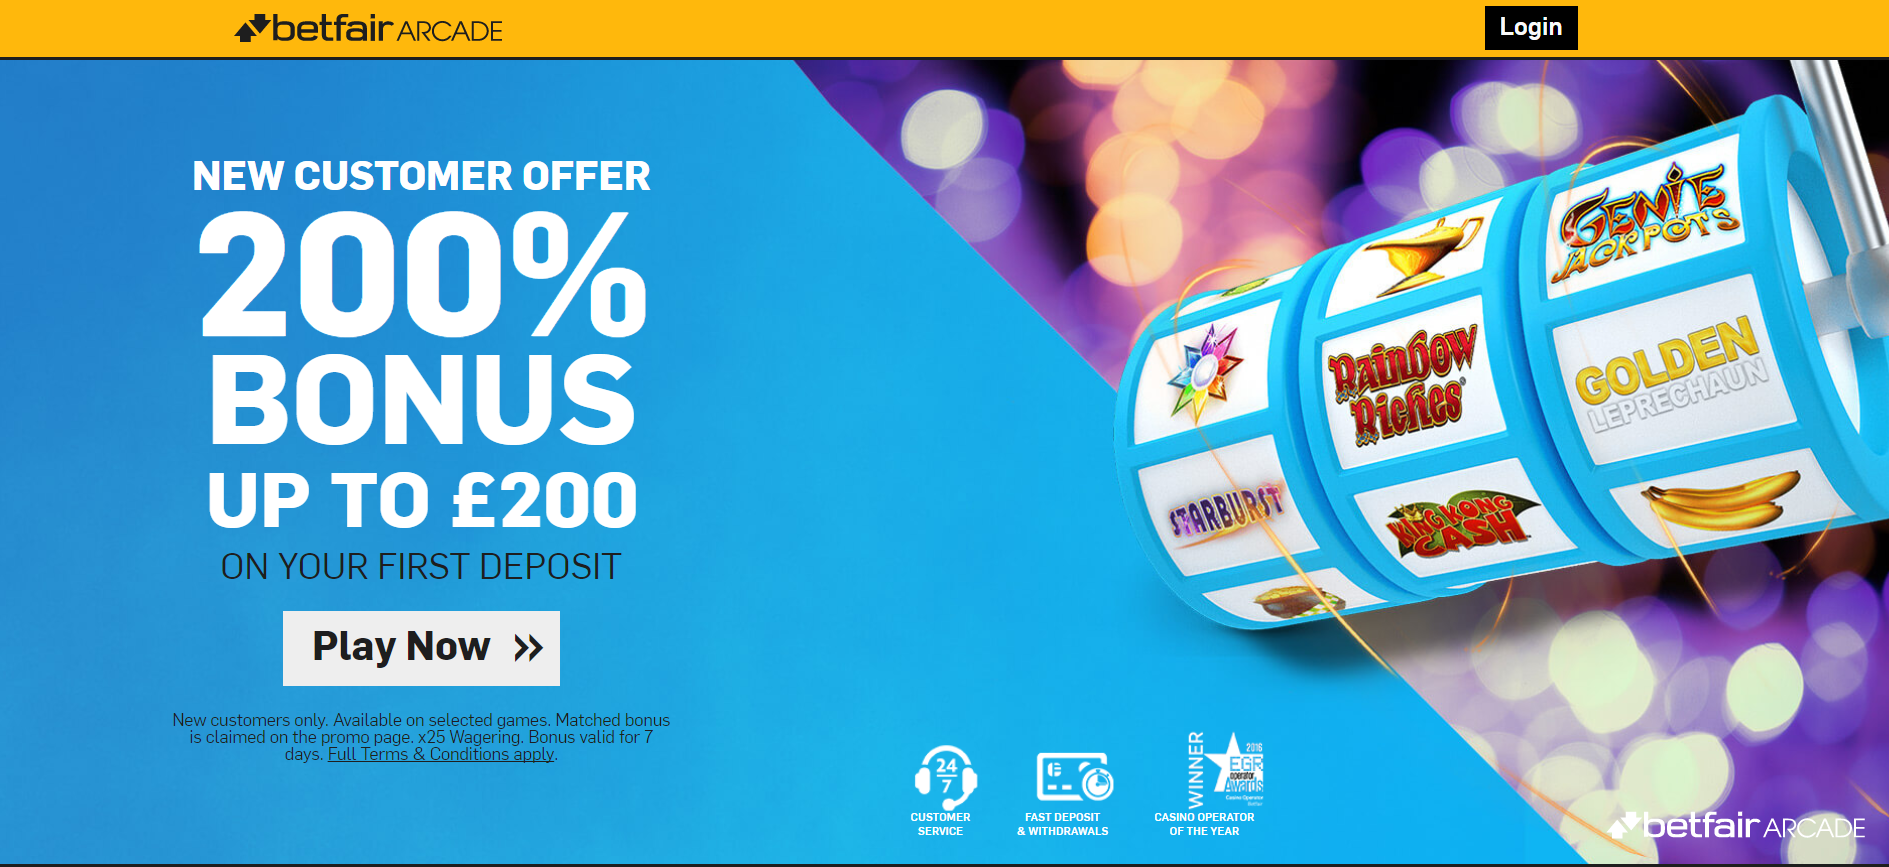 Betfair Arcade Bonus 200% up to £200 up for grabs to new players